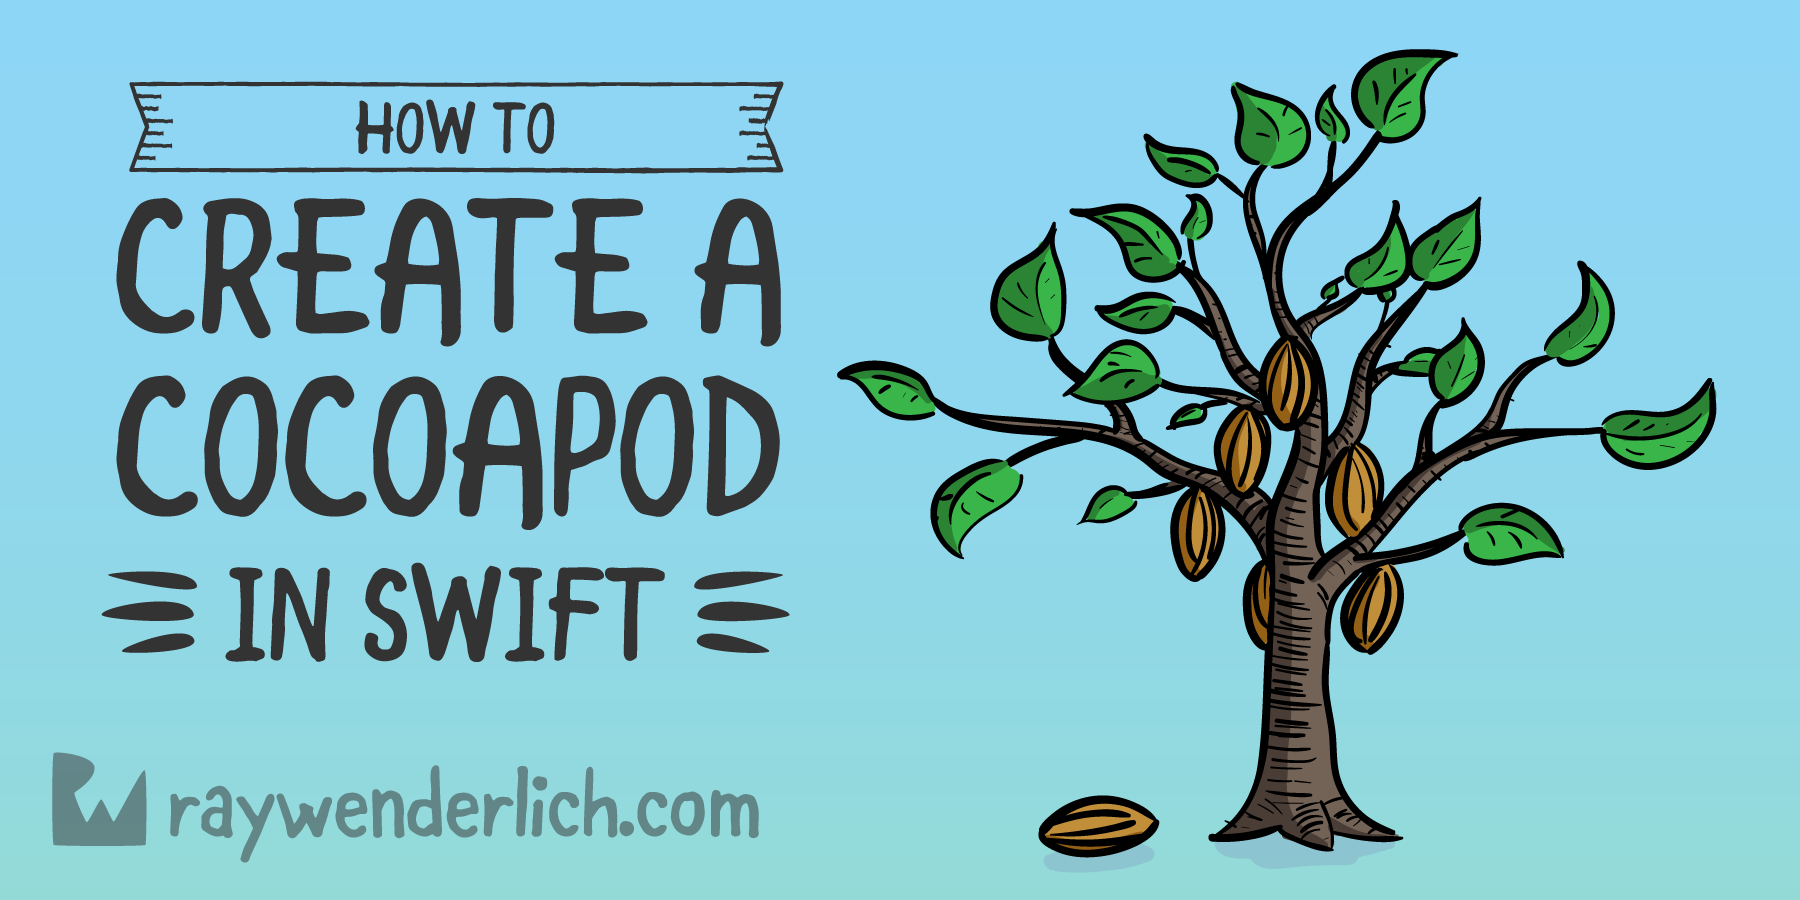 How to Create a CocoaPod in Swift | raywenderlich com